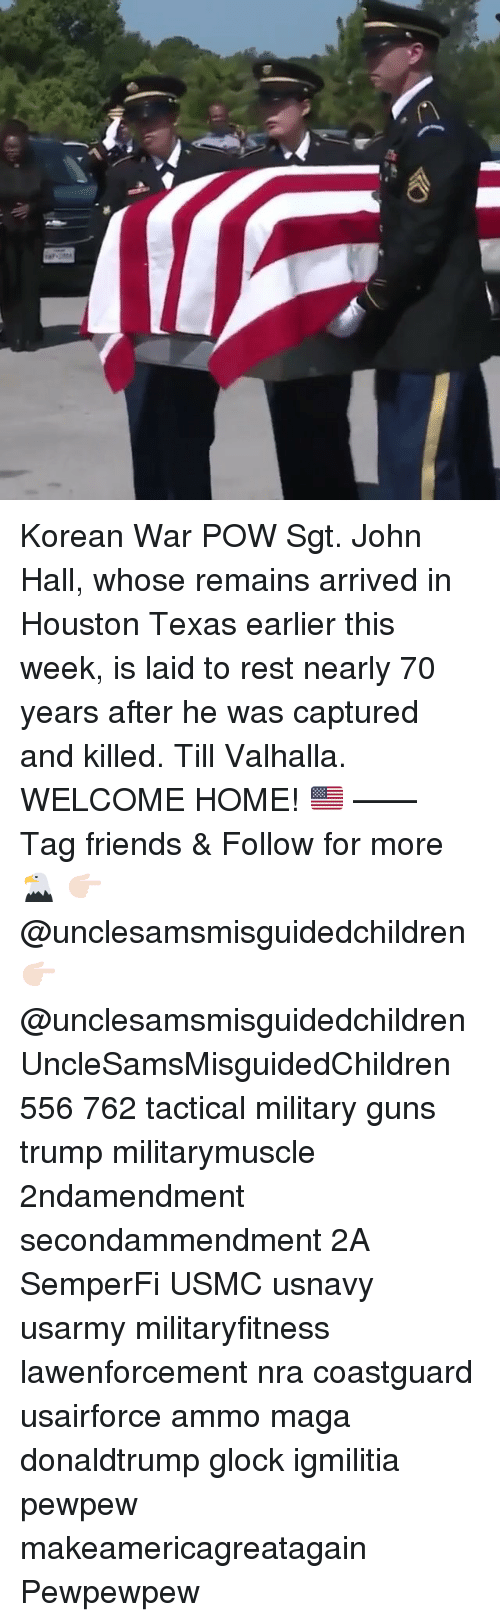 Friends, Guns, and Memes: Korean War POW Sgt. John Hall, whose remains arrived in Houston Texas earlier this week, is laid to rest nearly 70 years after he was captured and killed. Till Valhalla. WELCOME HOME! 🇺🇸 —— Tag friends & Follow for more 🦅 👉🏻 @unclesamsmisguidedchildren 👉🏻 @unclesamsmisguidedchildren UncleSamsMisguidedChildren 556 762 tactical military guns trump militarymuscle 2ndamendment secondammendment 2A SemperFi USMC usnavy usarmy militaryfitness lawenforcement nra coastguard usairforce ammo maga donaldtrump glock igmilitia pewpew makeamericagreatagain Pewpewpew